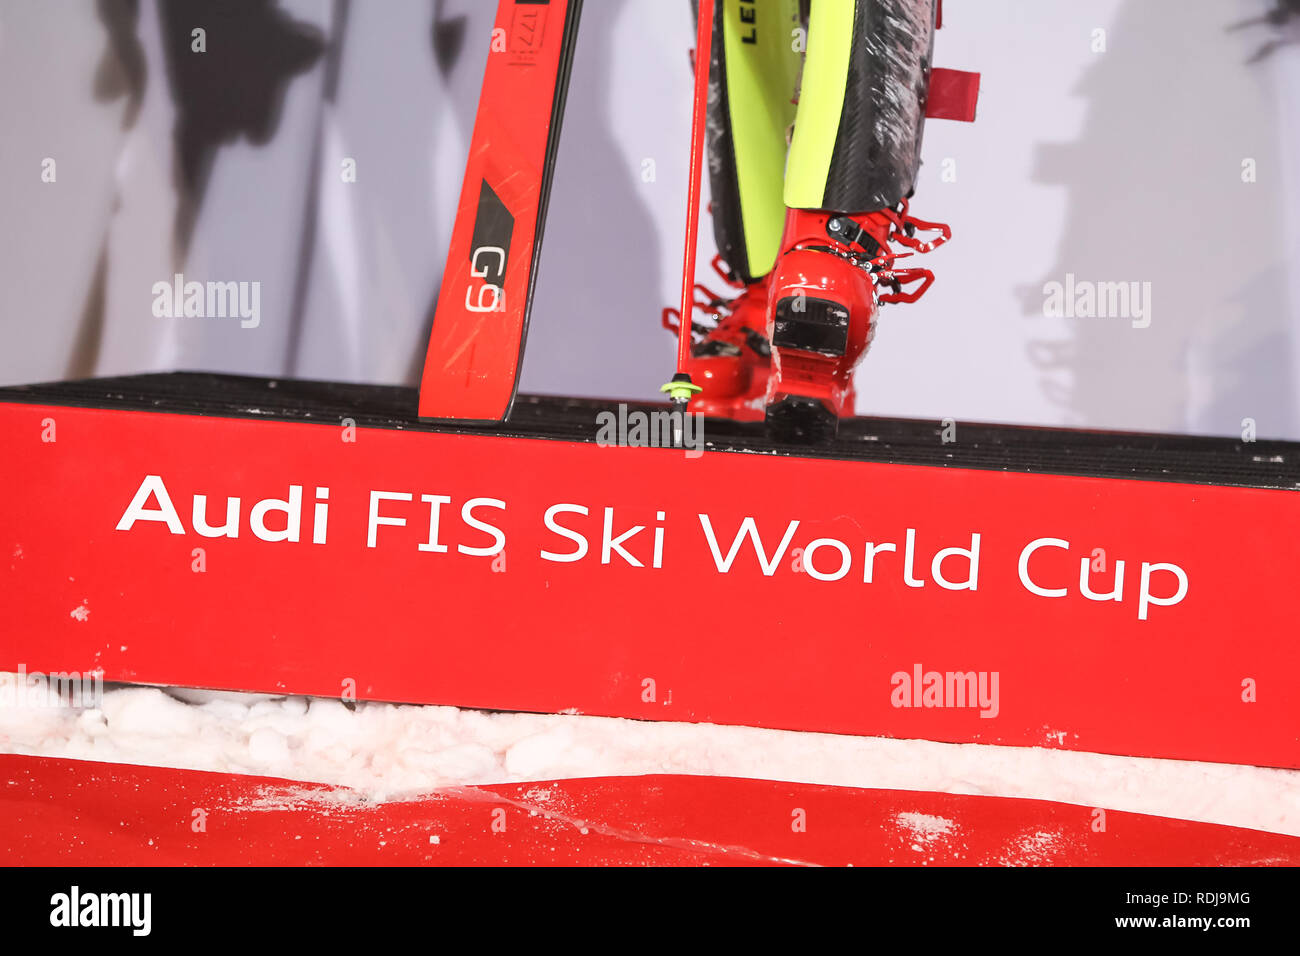 Zagreb, Croatia - January 5, 2019 : Audi FIS Ski World Cup logo on the award ceremony of the Audi FIS Alpine Ski World Cup Women's Slalom, Snow Queen  - Stock Image